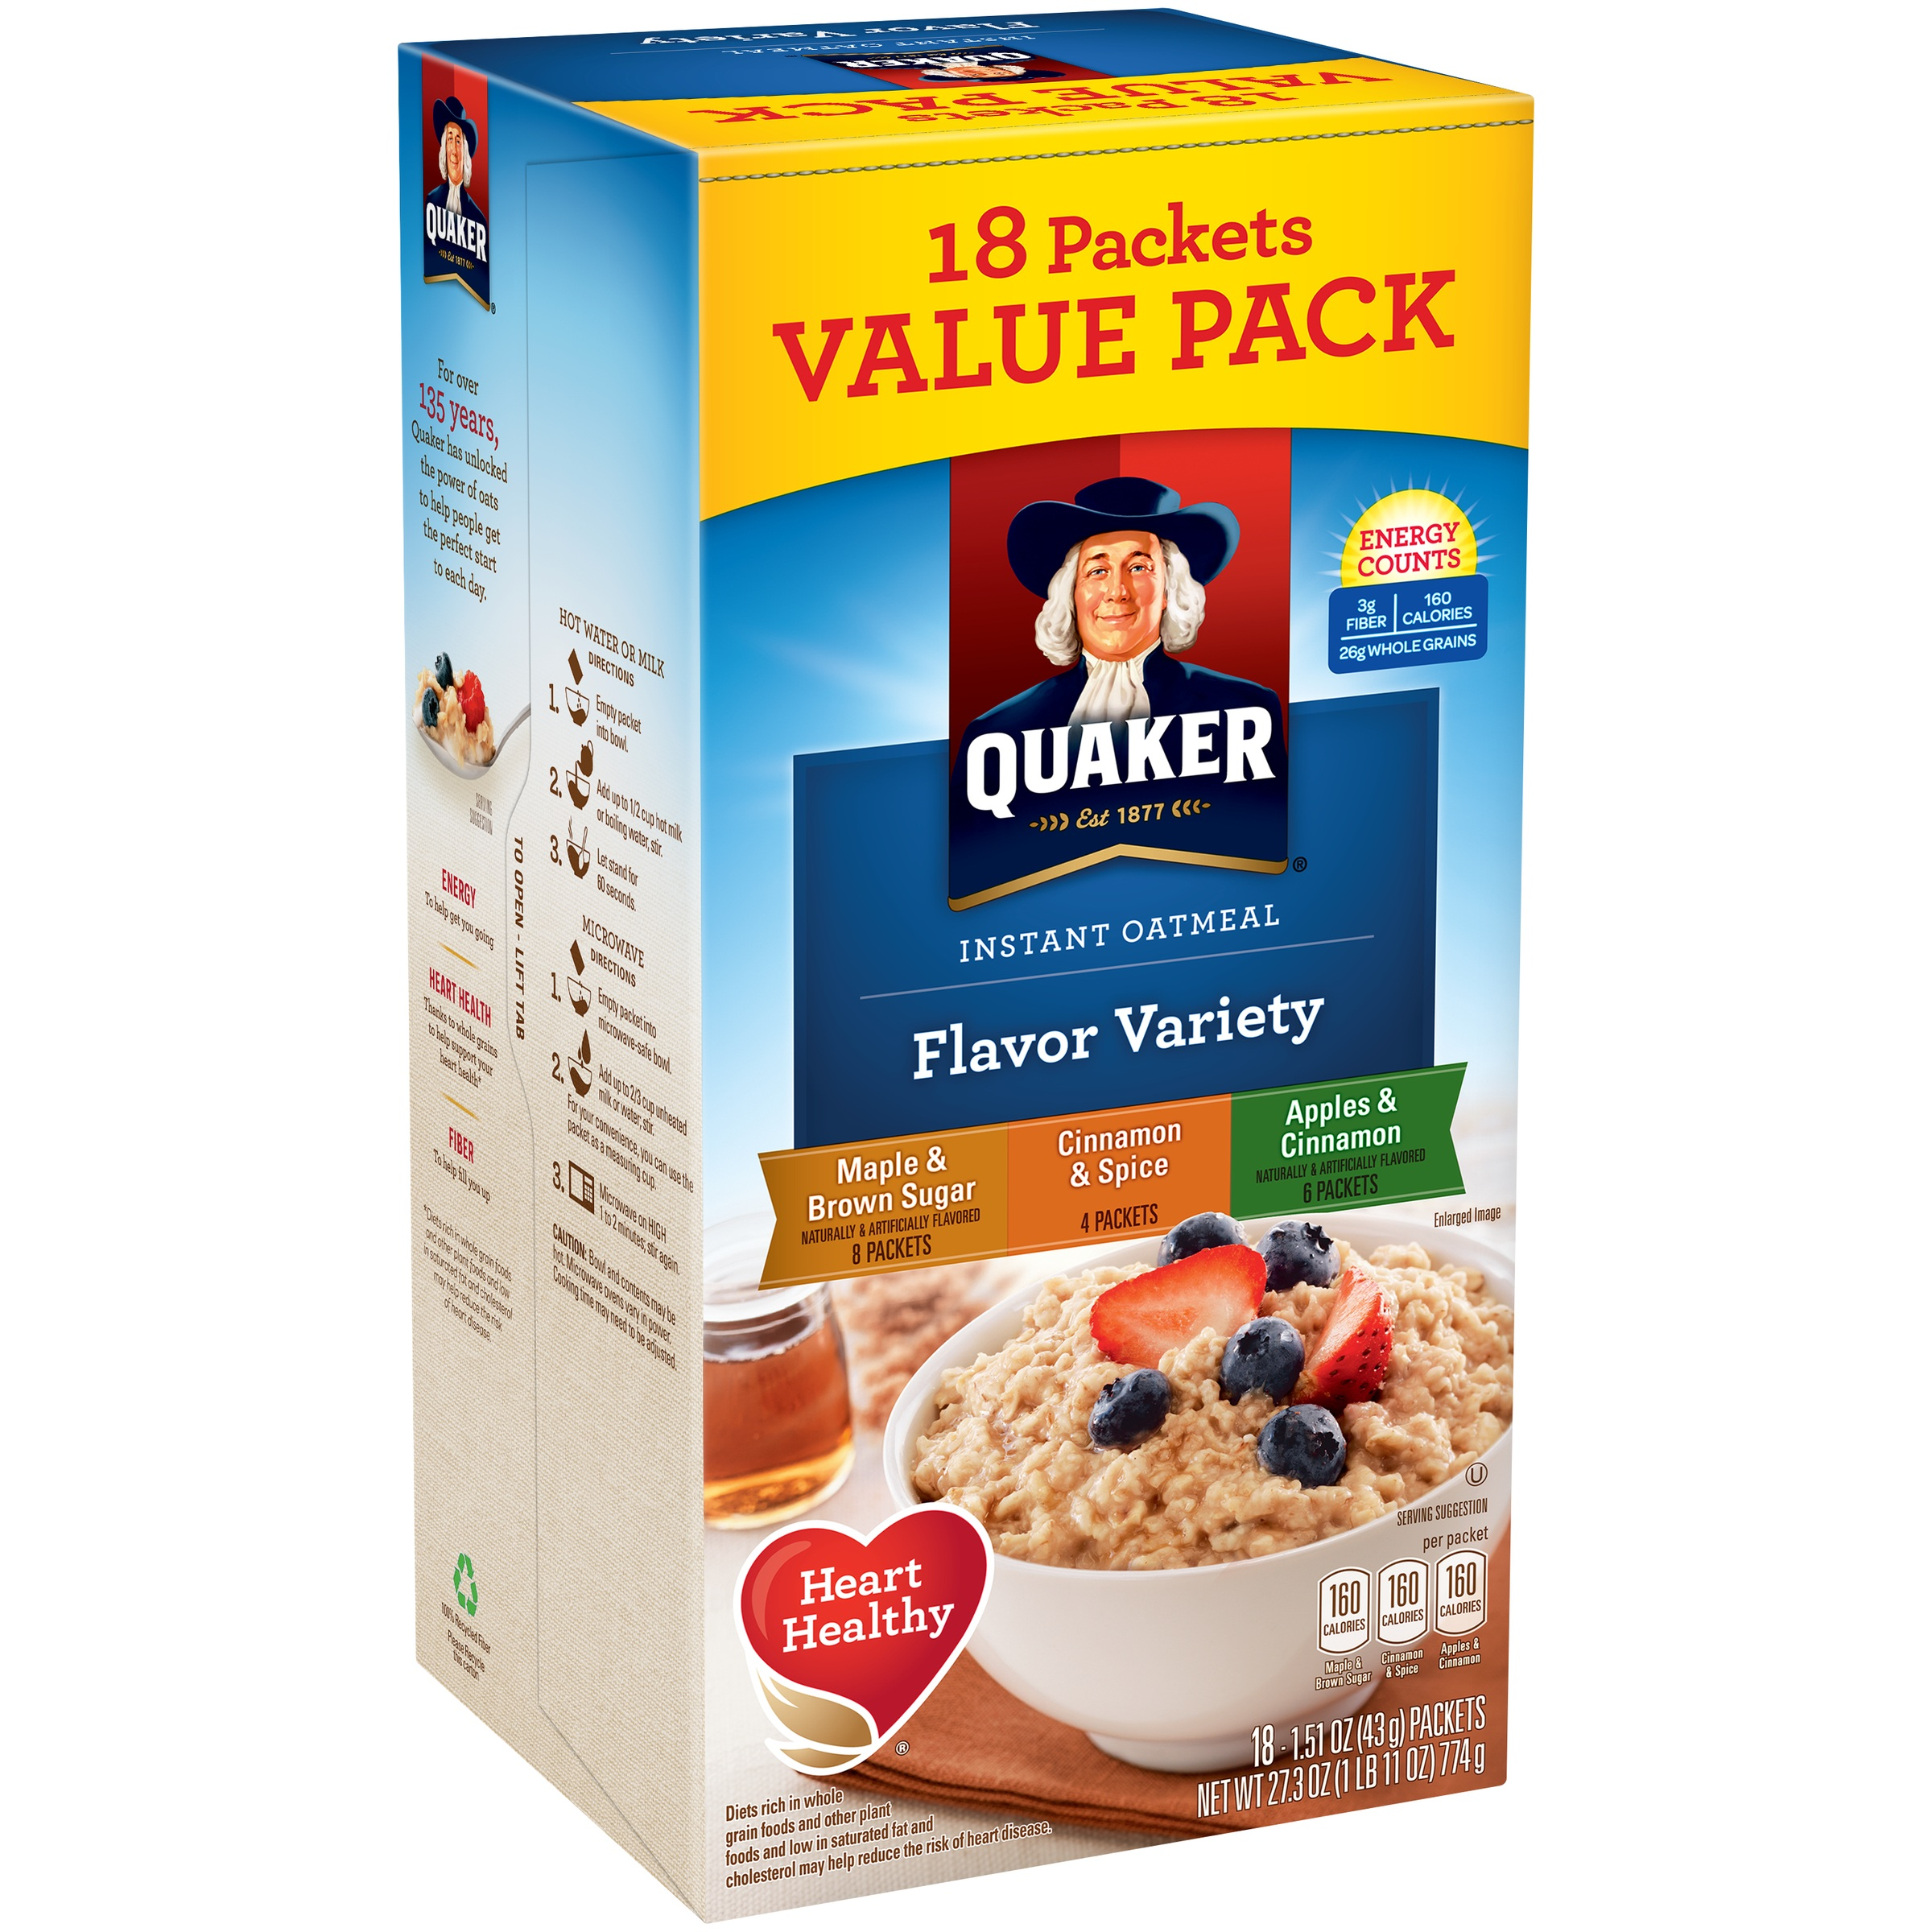 Quaker Instant Oatmeal, Flavor Variety Value Pack, 18 Packets